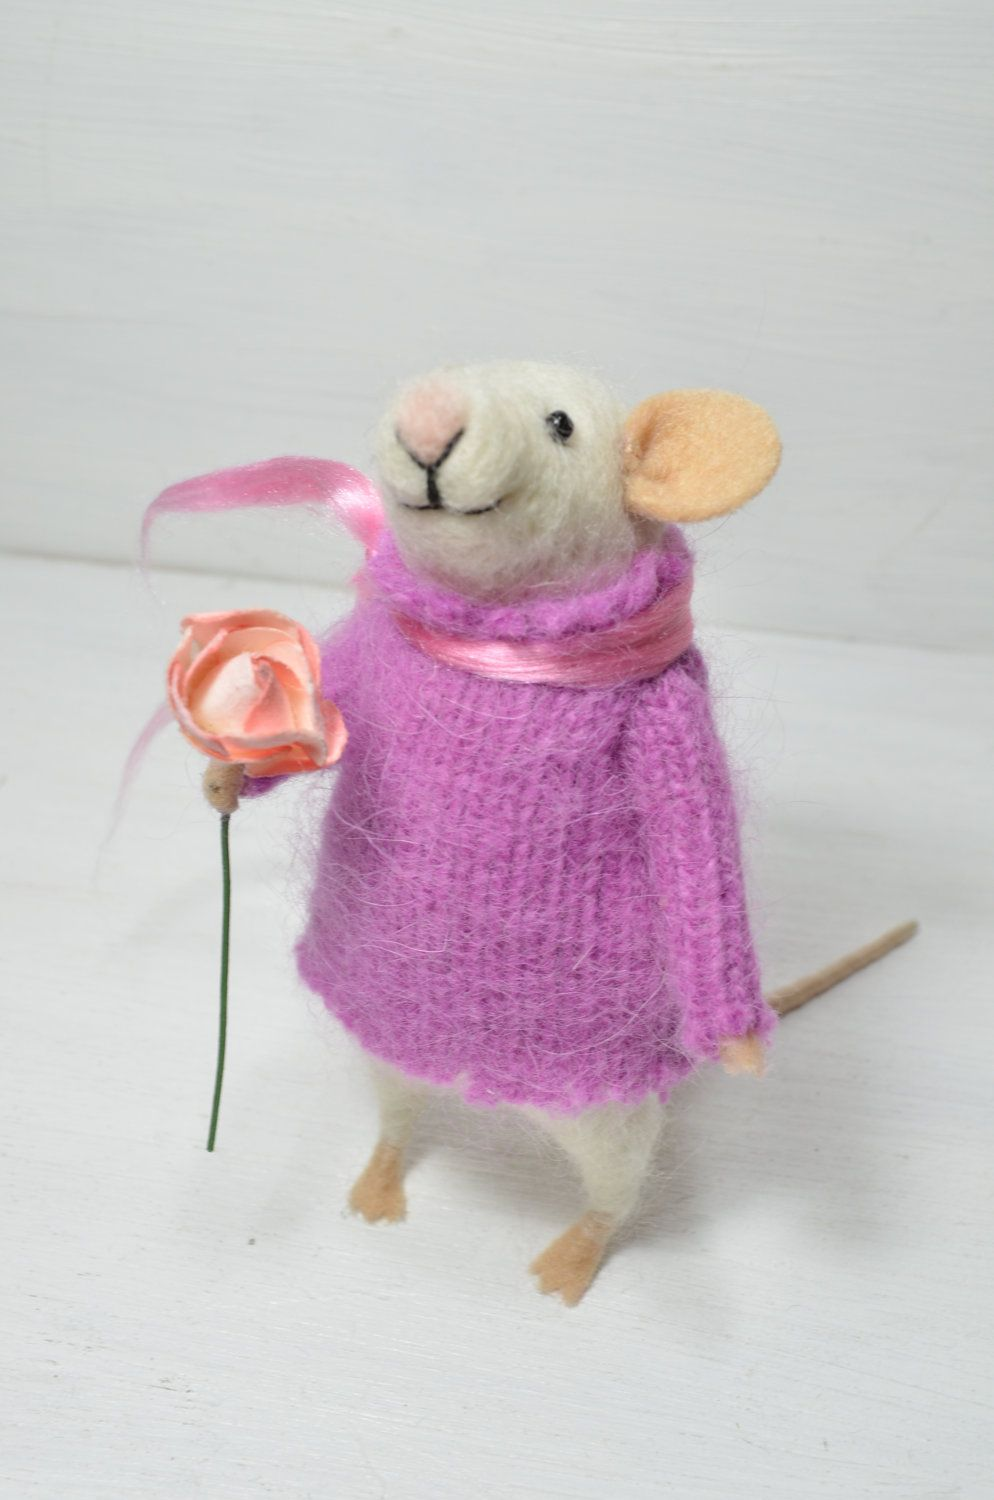 Cocket Little Mouse - unique - needle felted ornament animal, felting dreams by johana molina. $68.00, via Etsy.